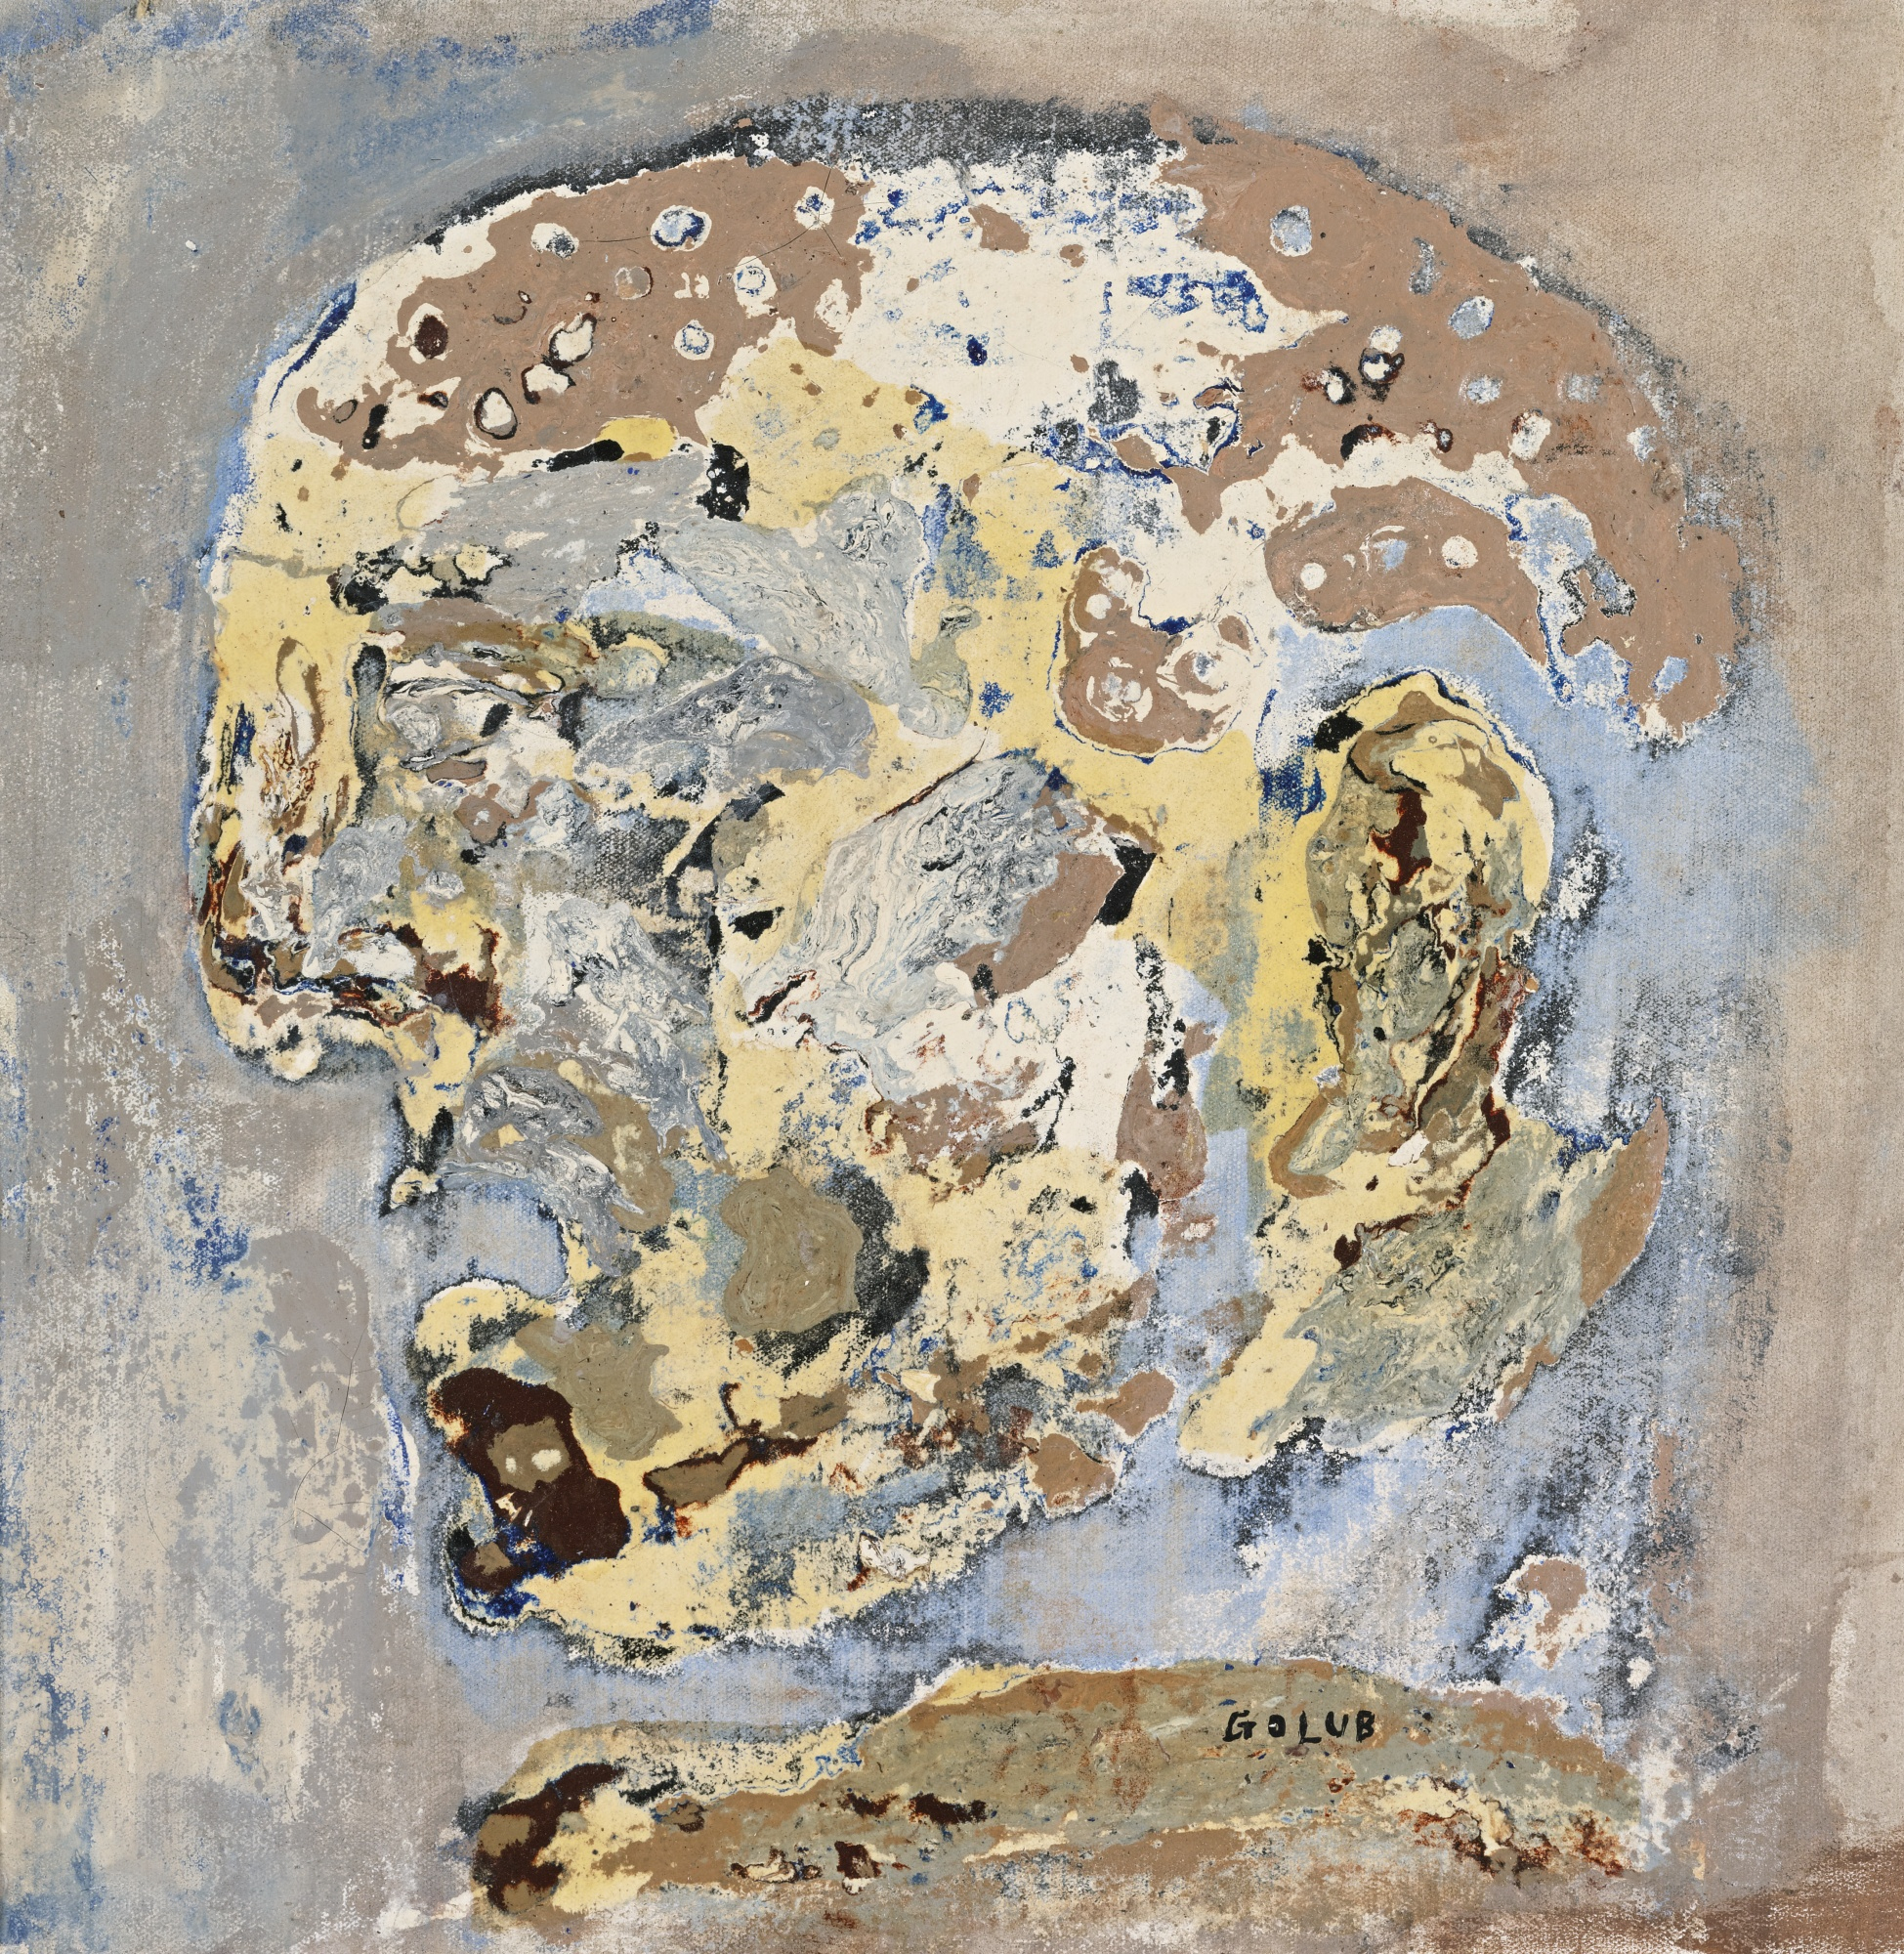 An example of Leon Golub's work, Head IX, not among the disputed works.